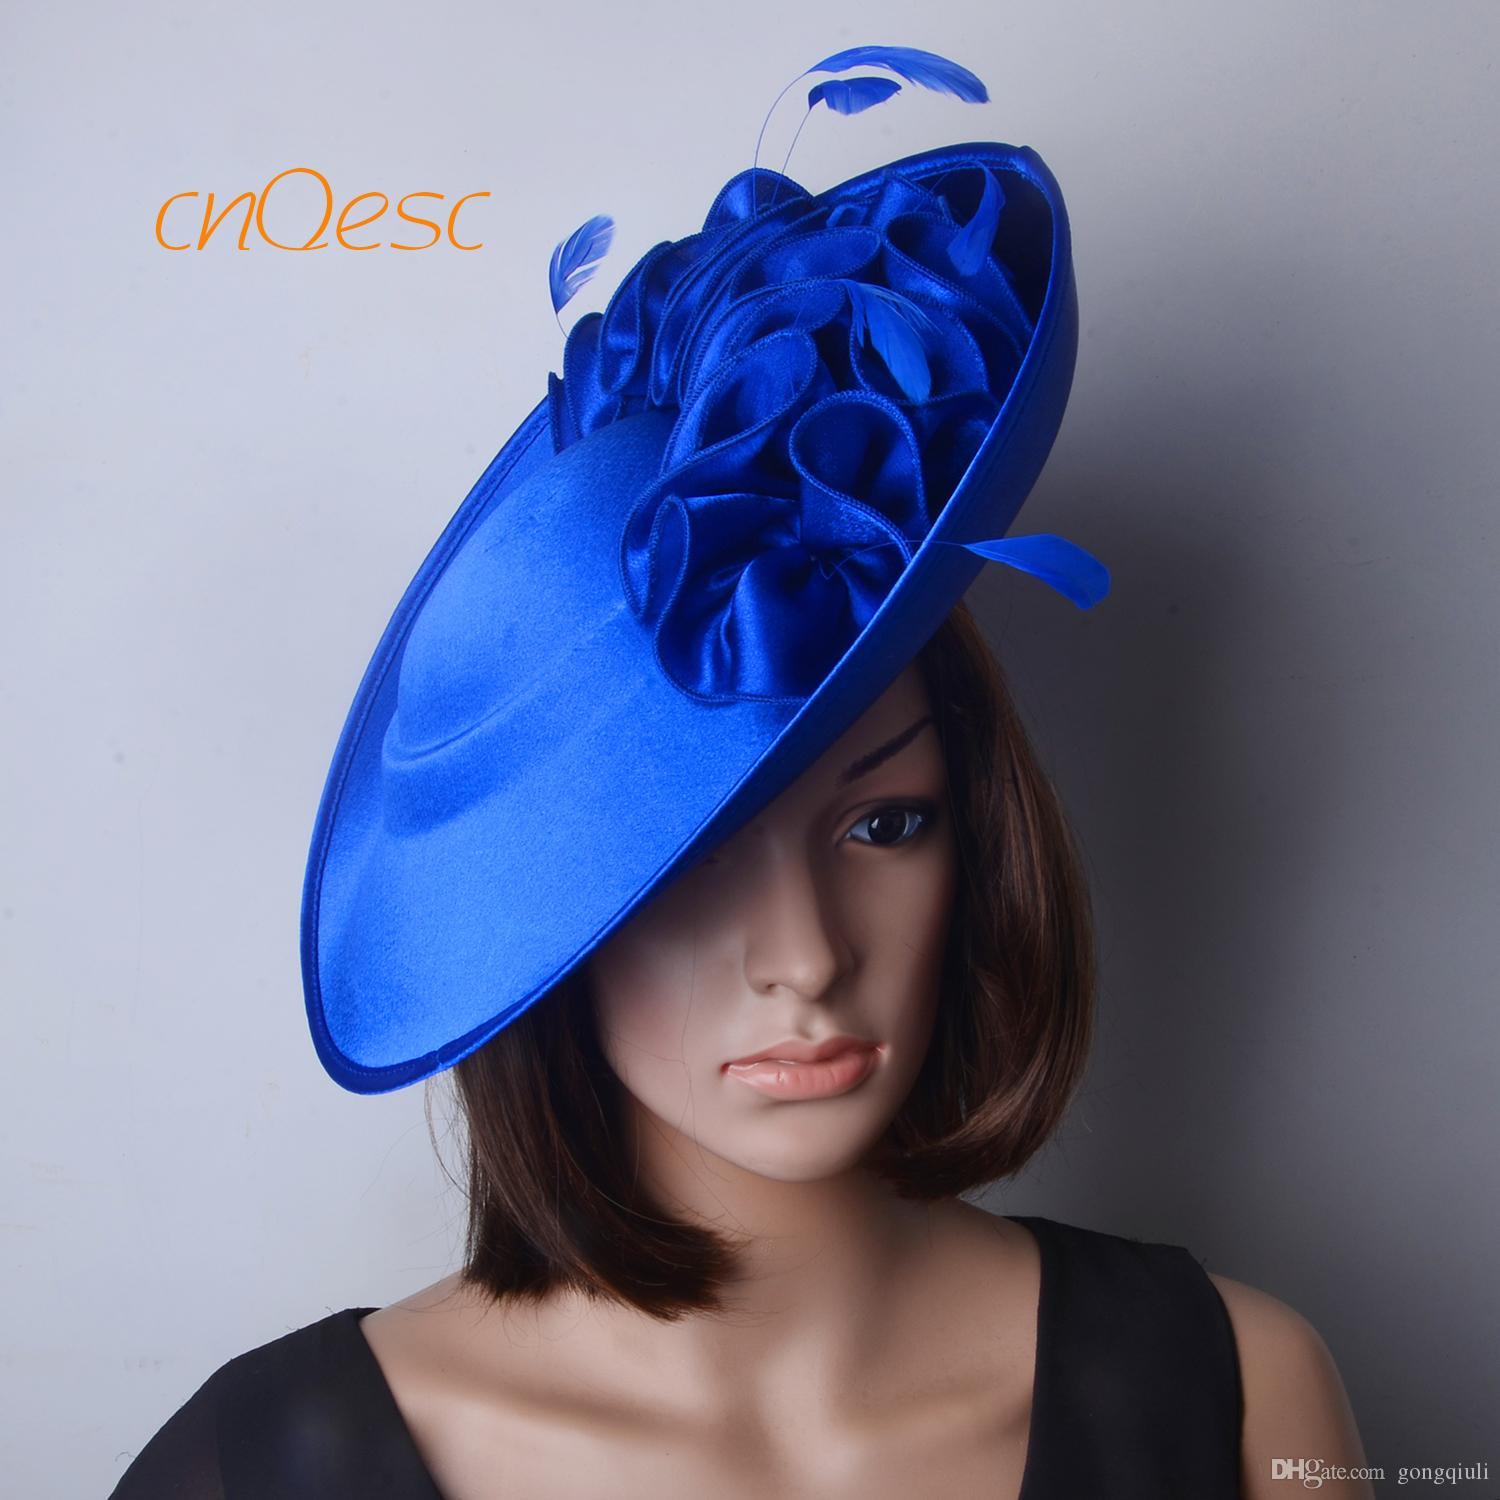 Royal Blue Large Saucer Satin Fascinator Formal Hat For Races Wedding  Mother S Day Derby Bridal Cowgirl Hat Bridal Pillbox Hat From Gongqiuli 03316fb6a81